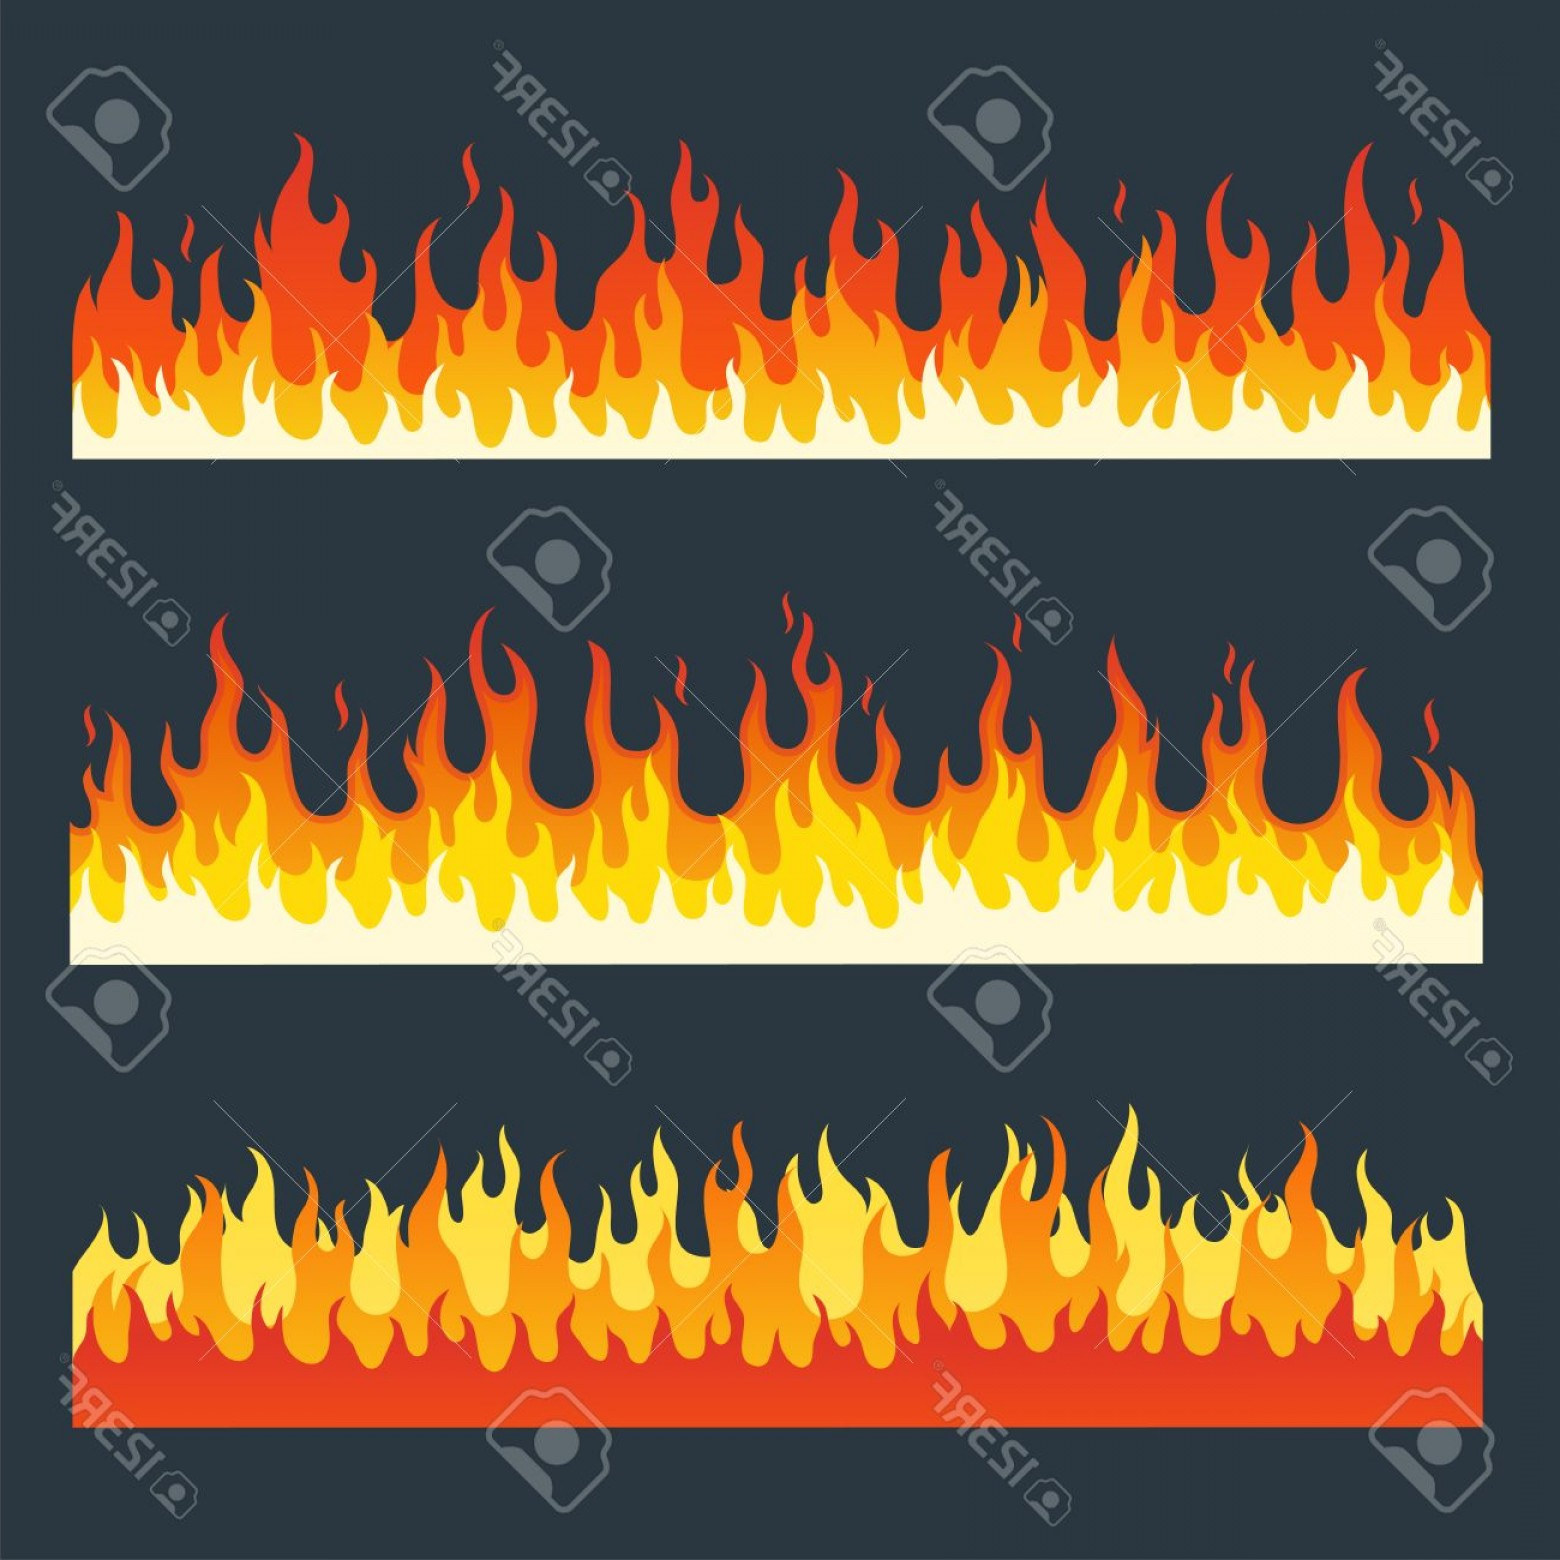 Cartoon Fire Flames Vector: Photostock Vector Fire Flames Set In A Flat Style Cartoon Burning Fire Flame Fire Flames Isolated On A Dark Background